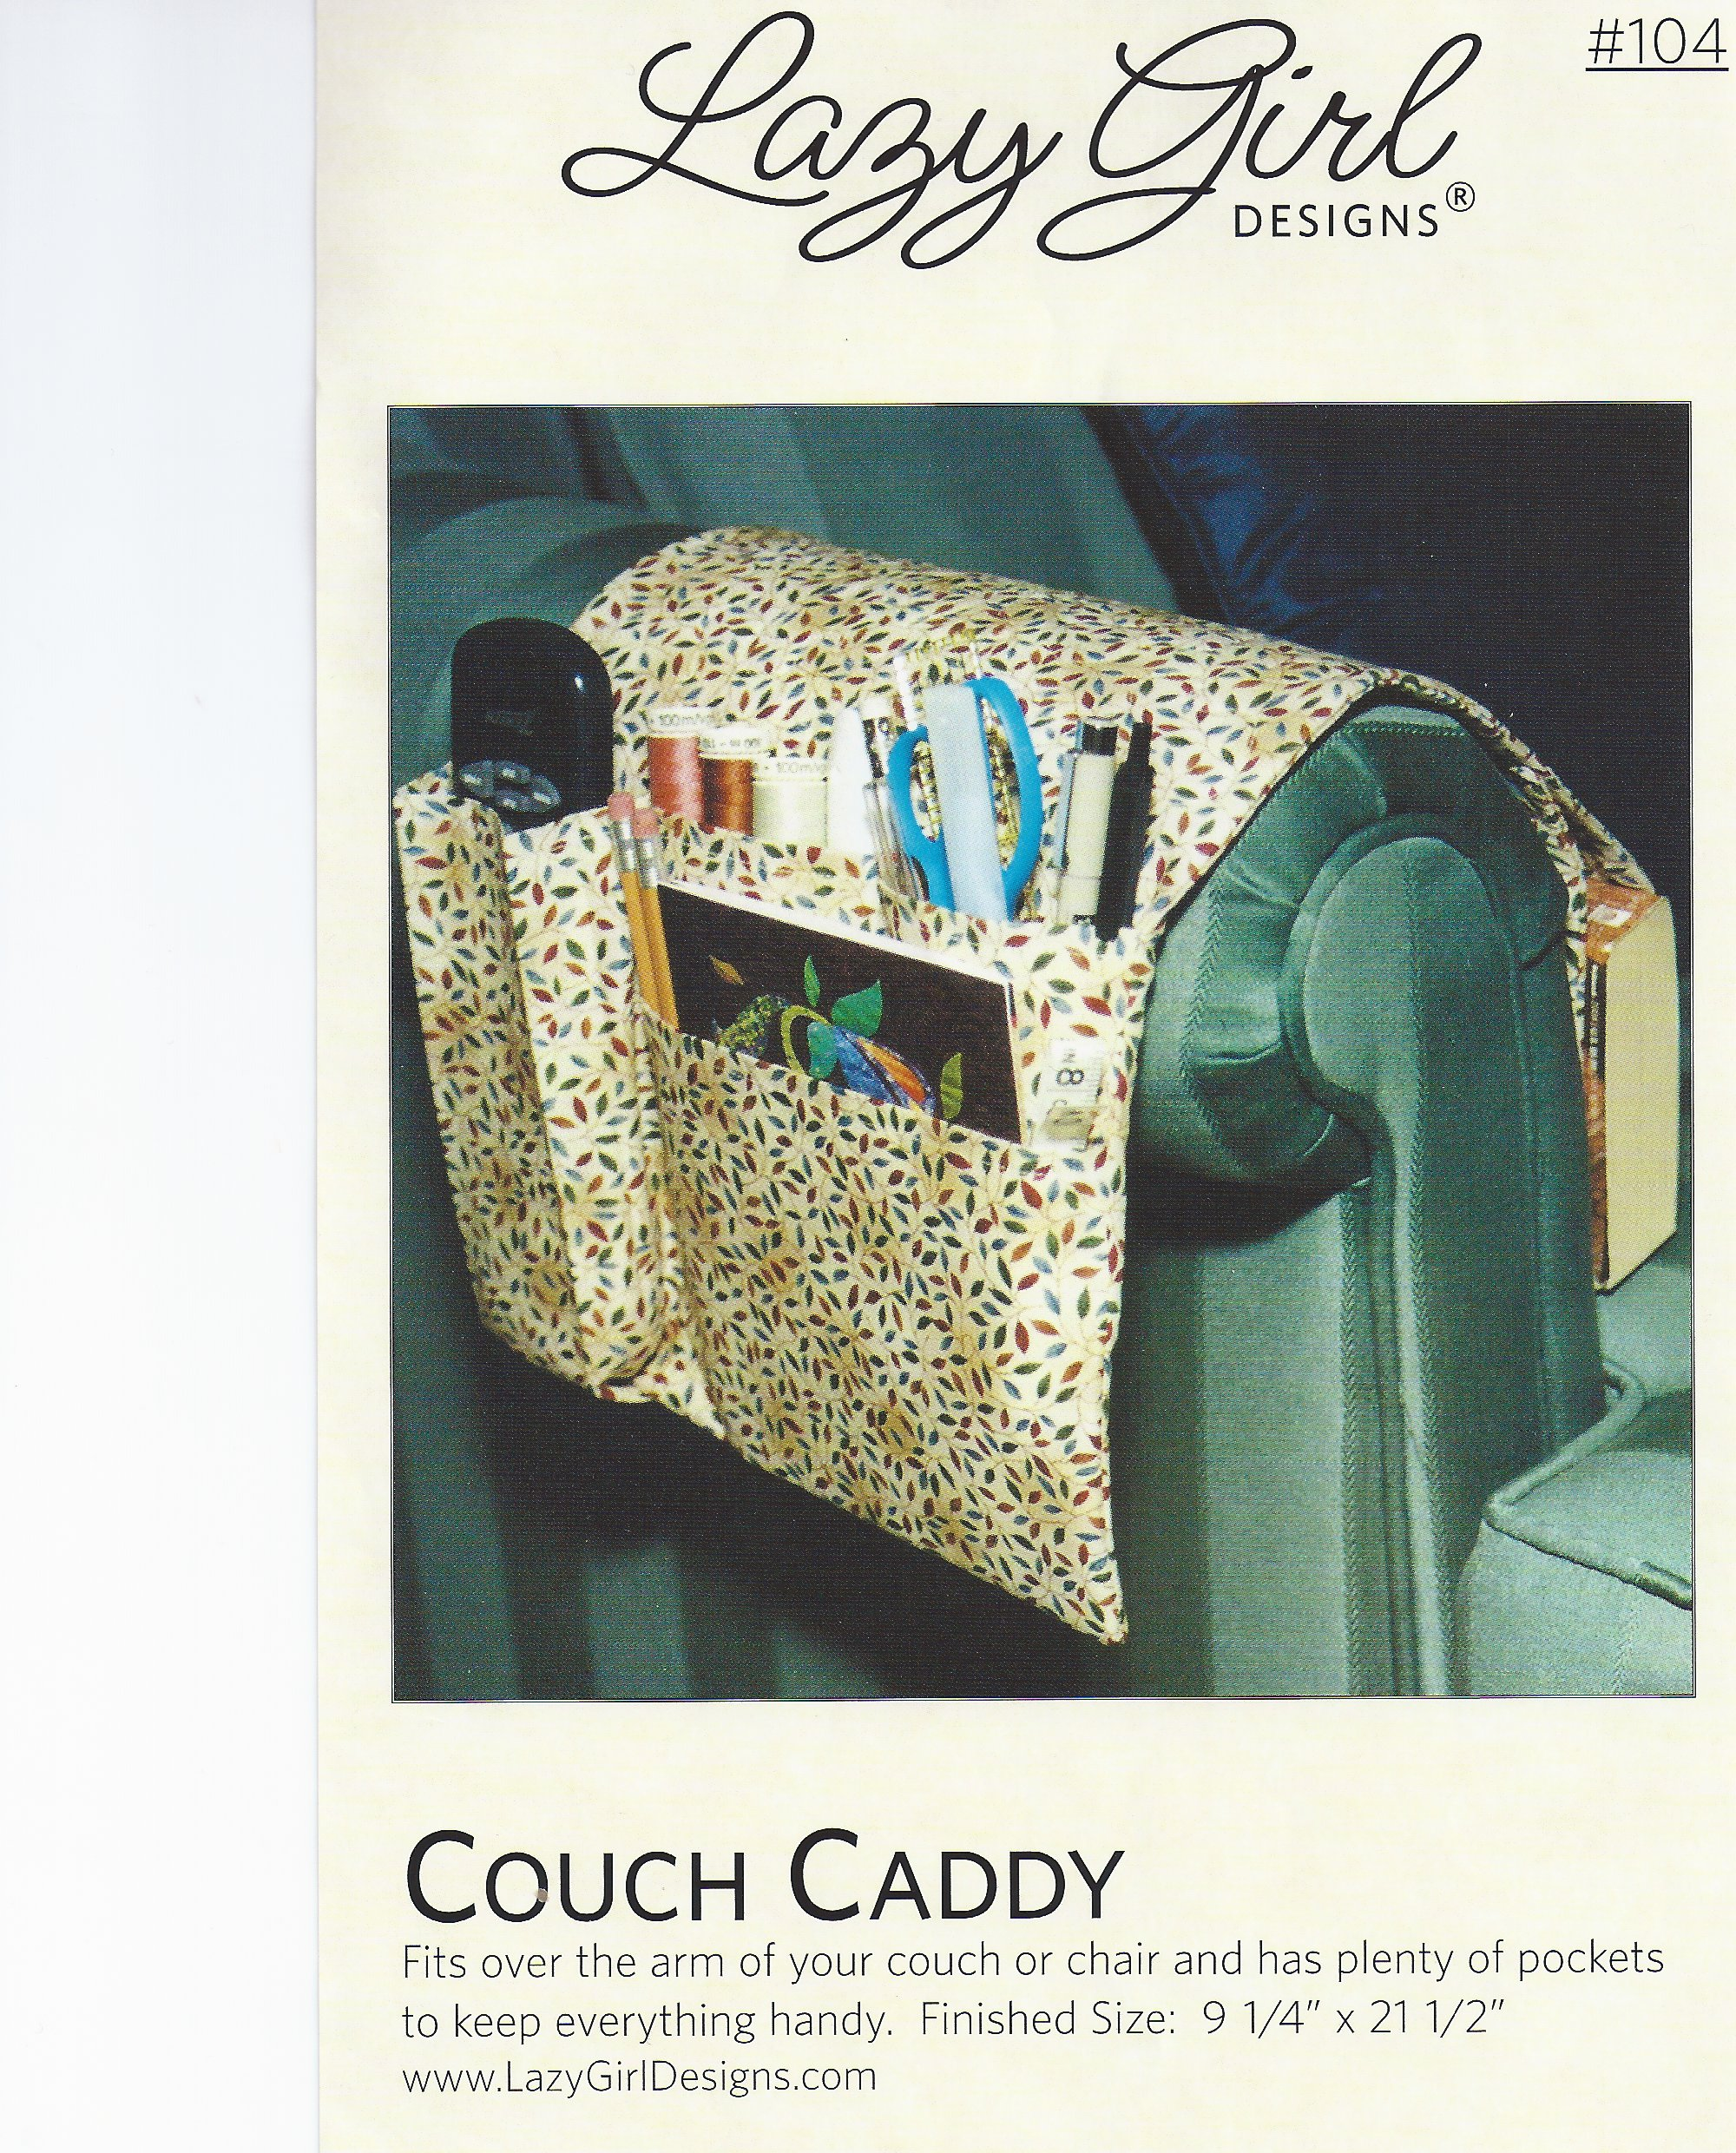 Love seat and couch - 3 part 8